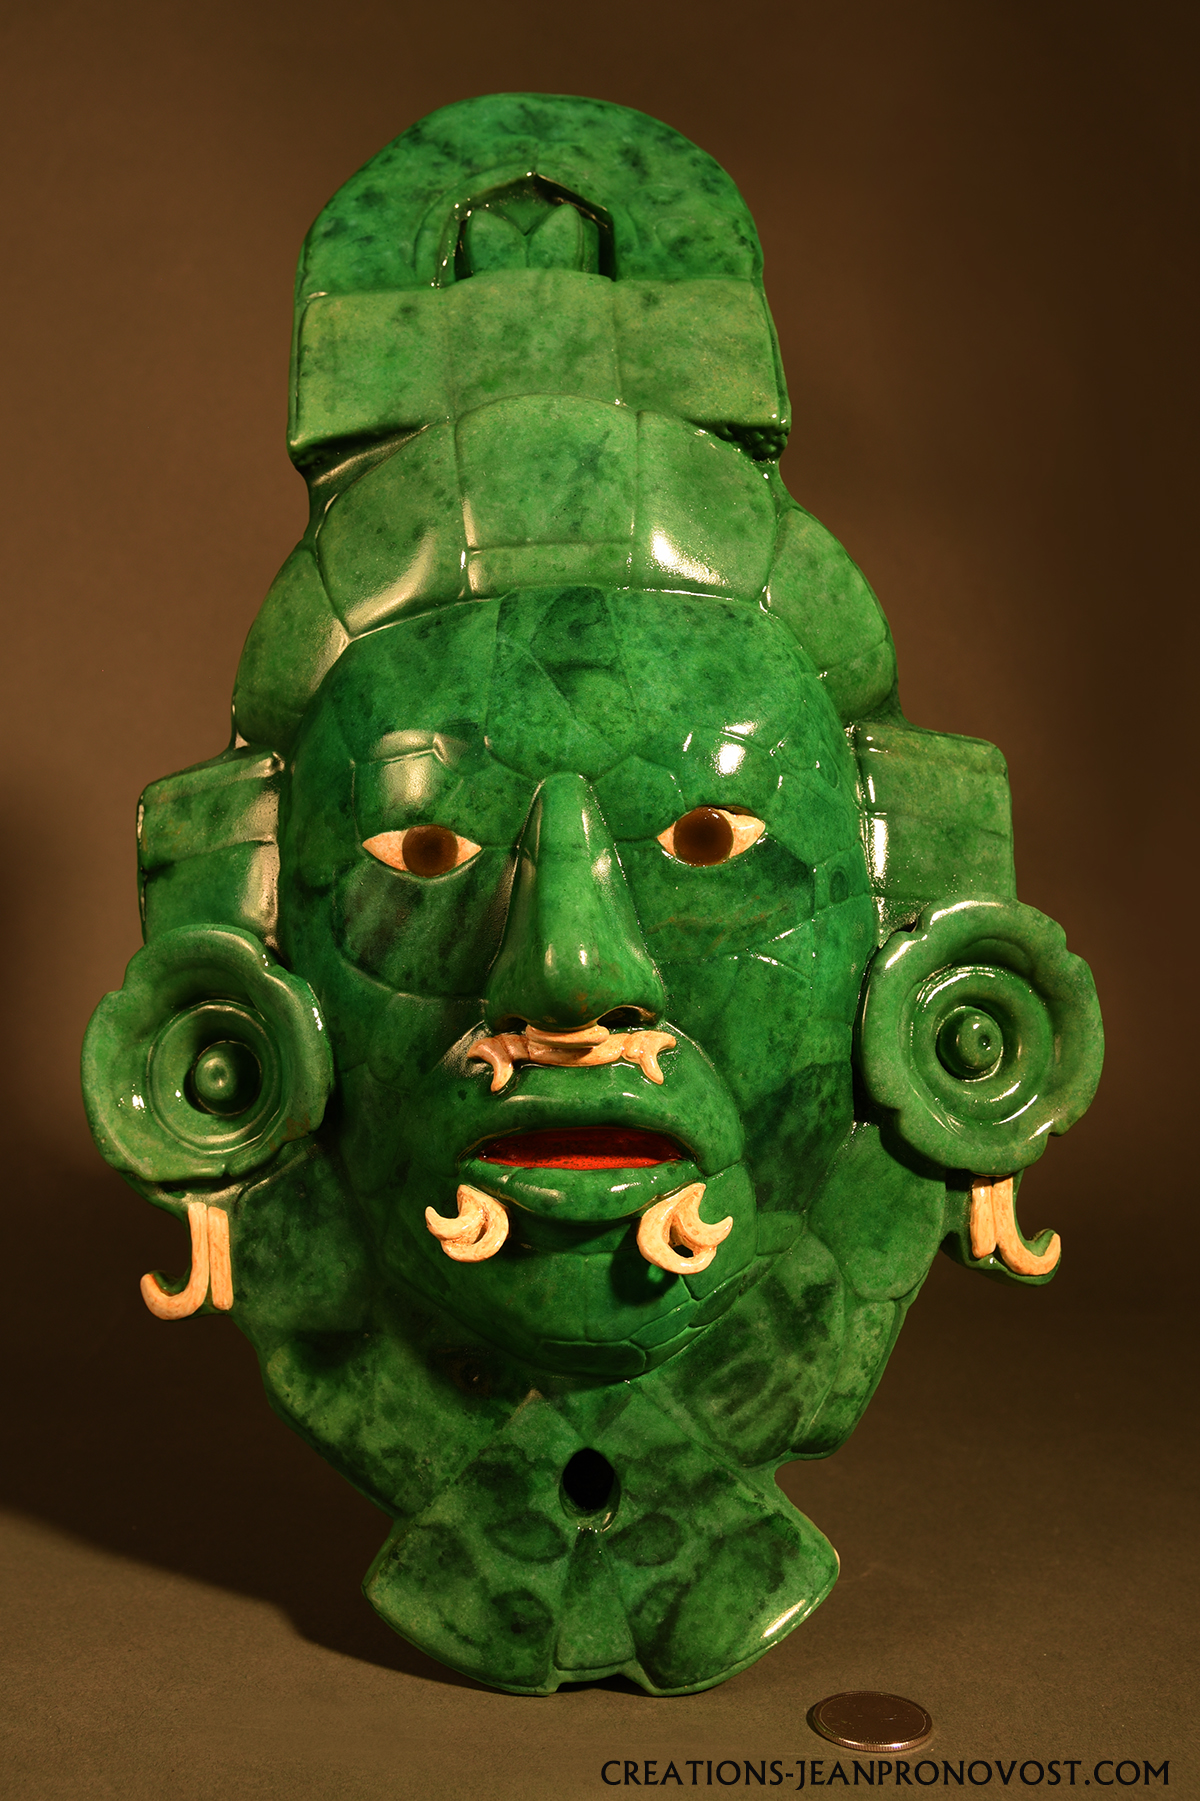 Jade mask sculpture of Calakmul